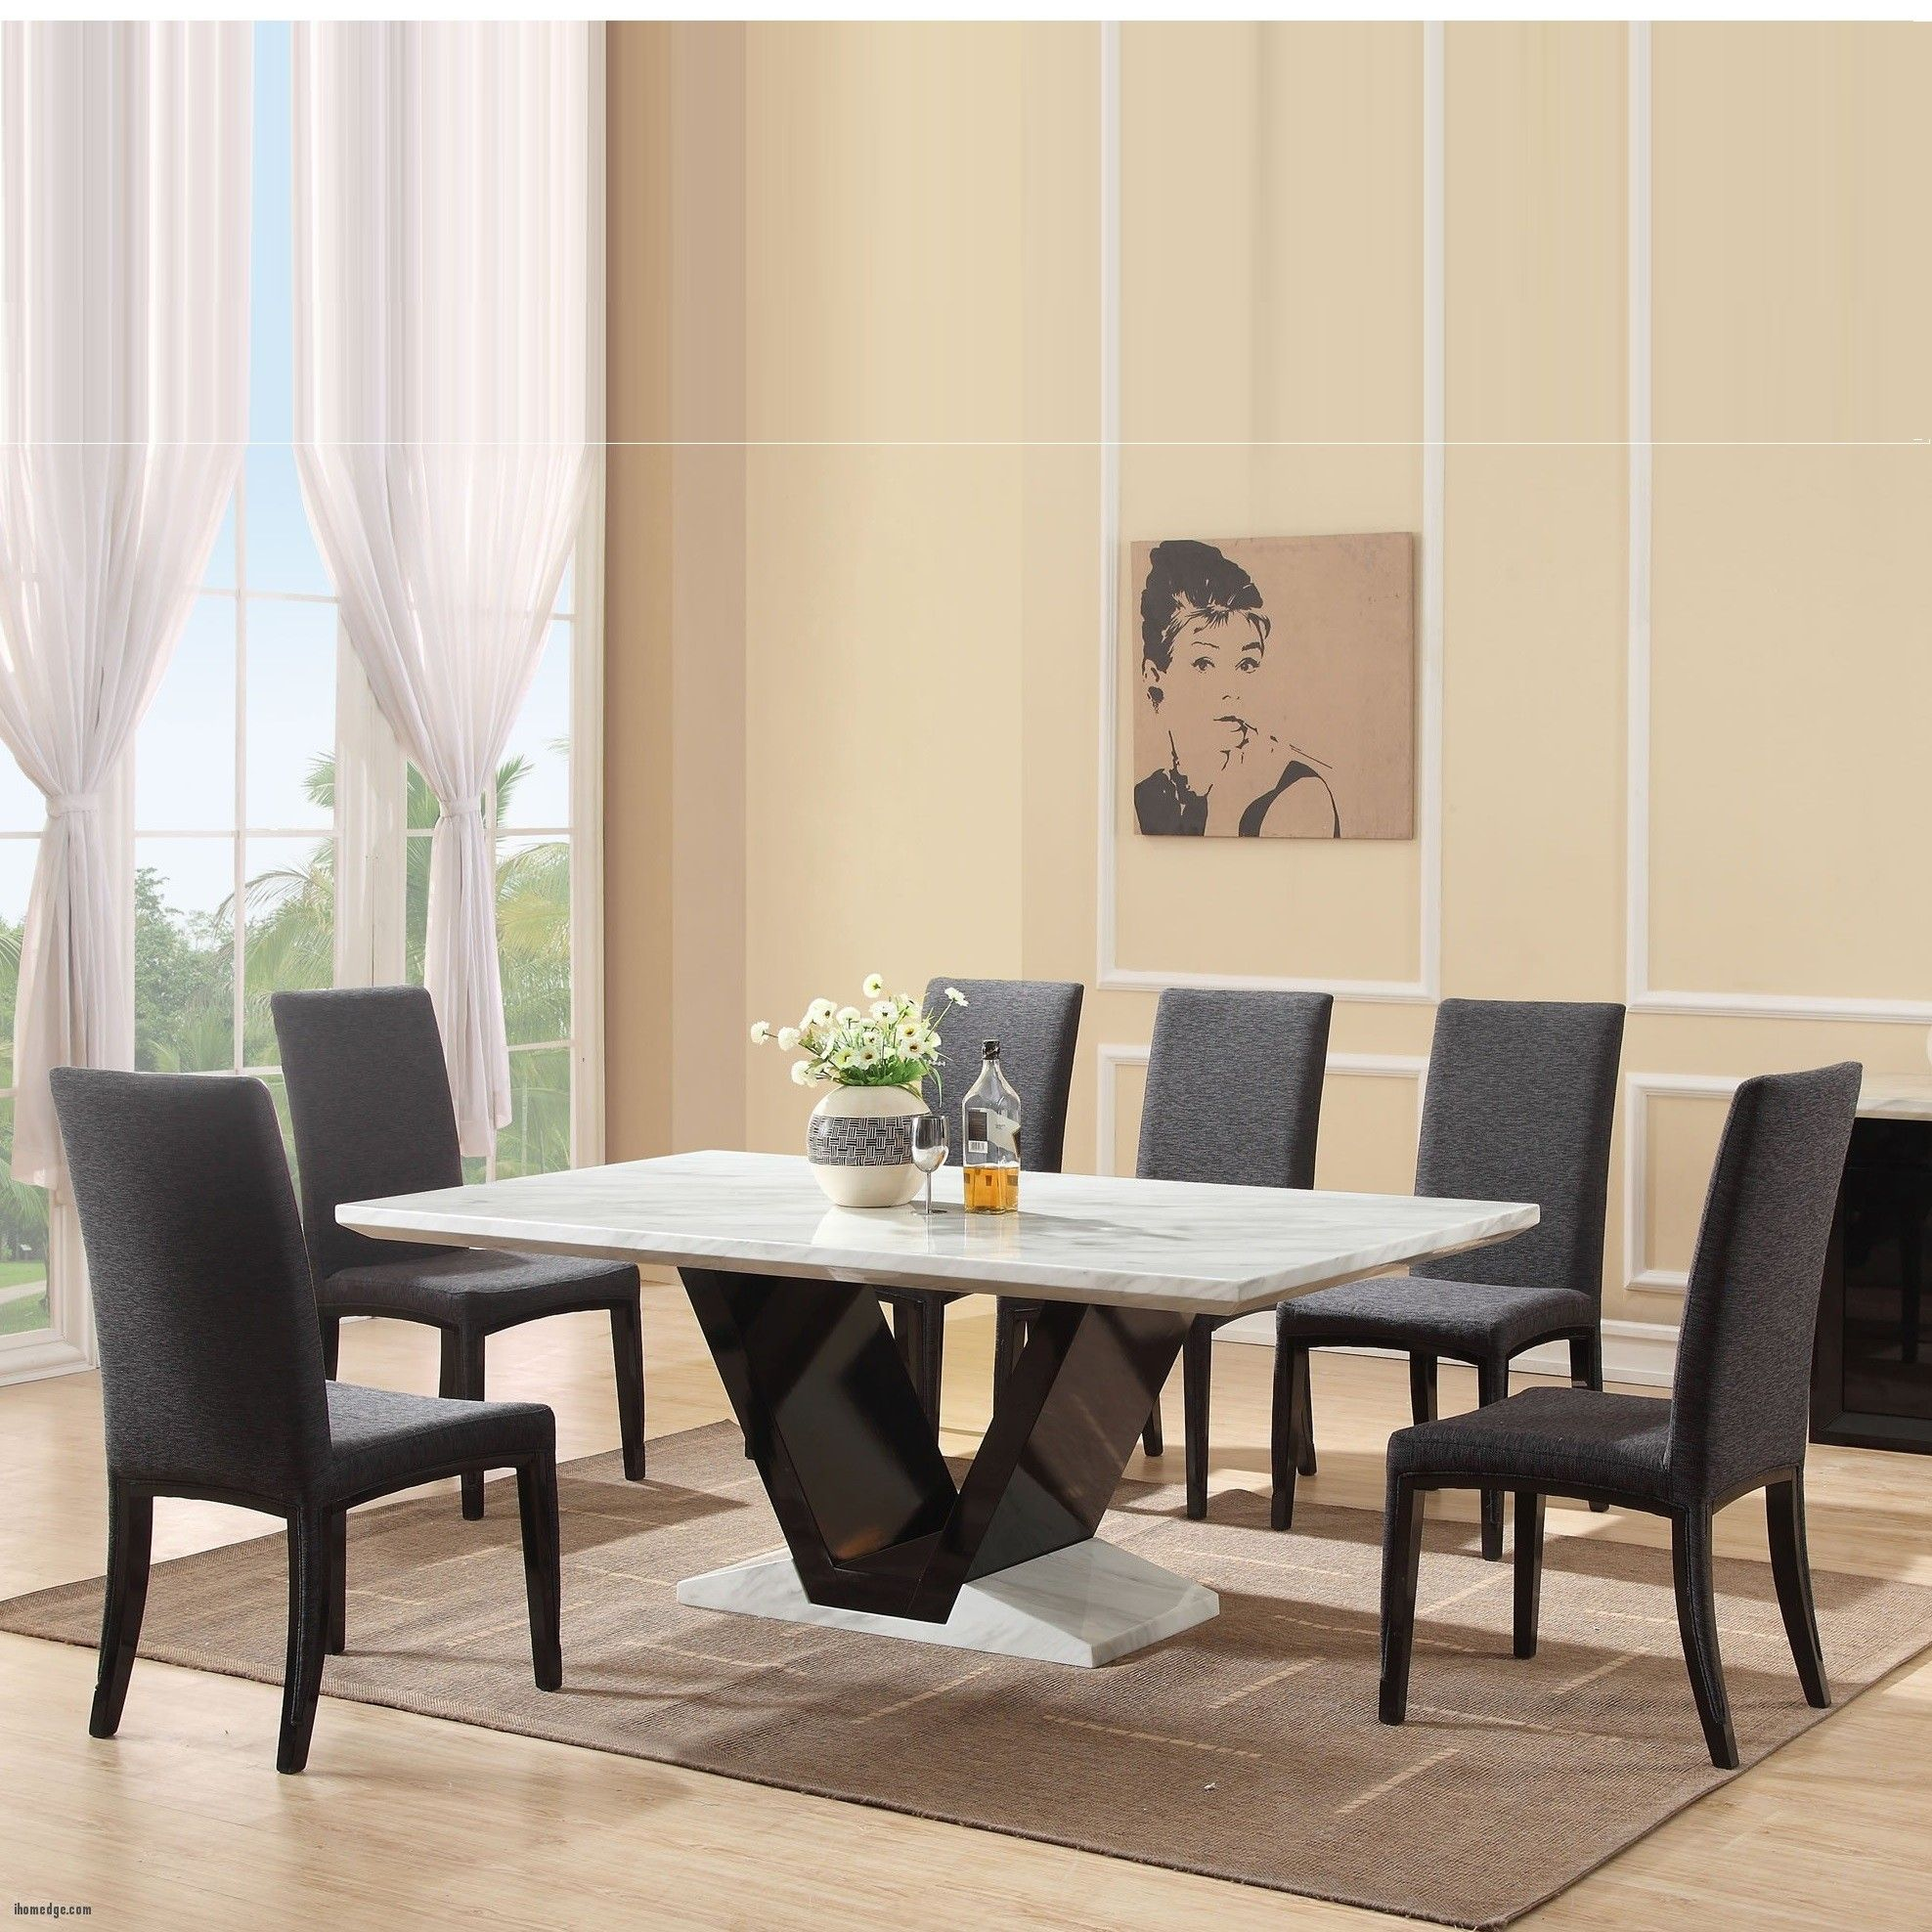 Inspirational Unique Marble Dining Table  Midas Gloss Black Entrancing Marble Dining Room Sets 2018